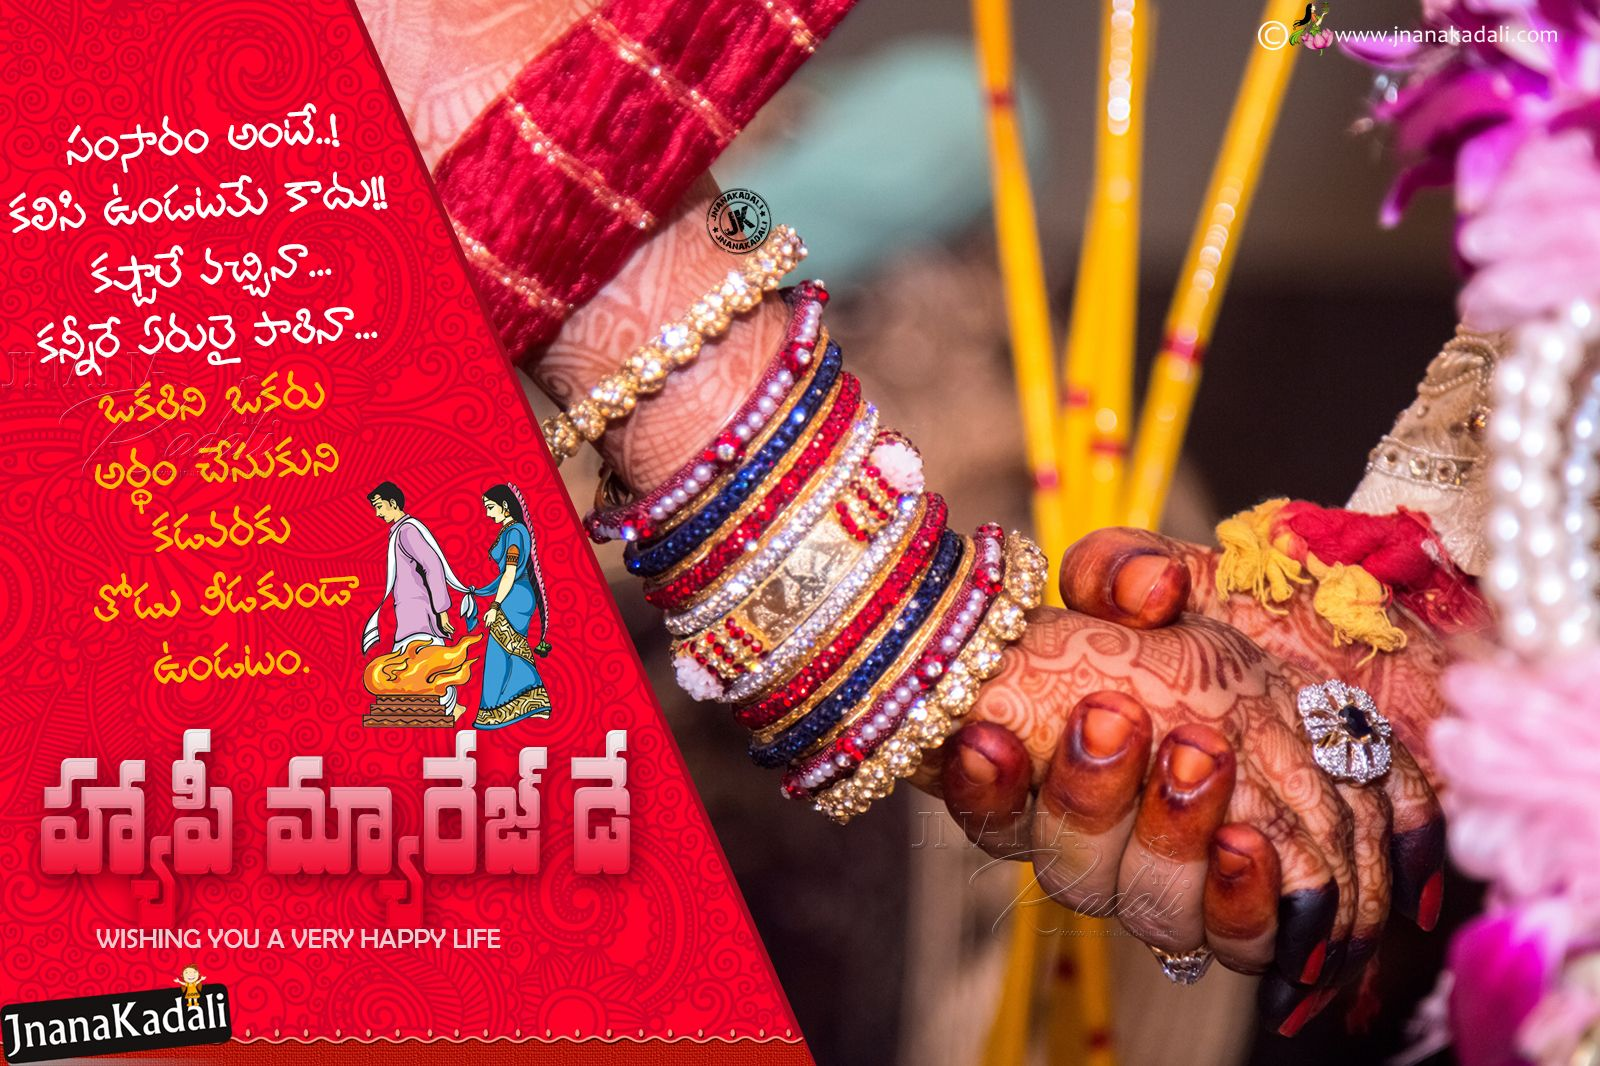 Pin on Marriage day greetings